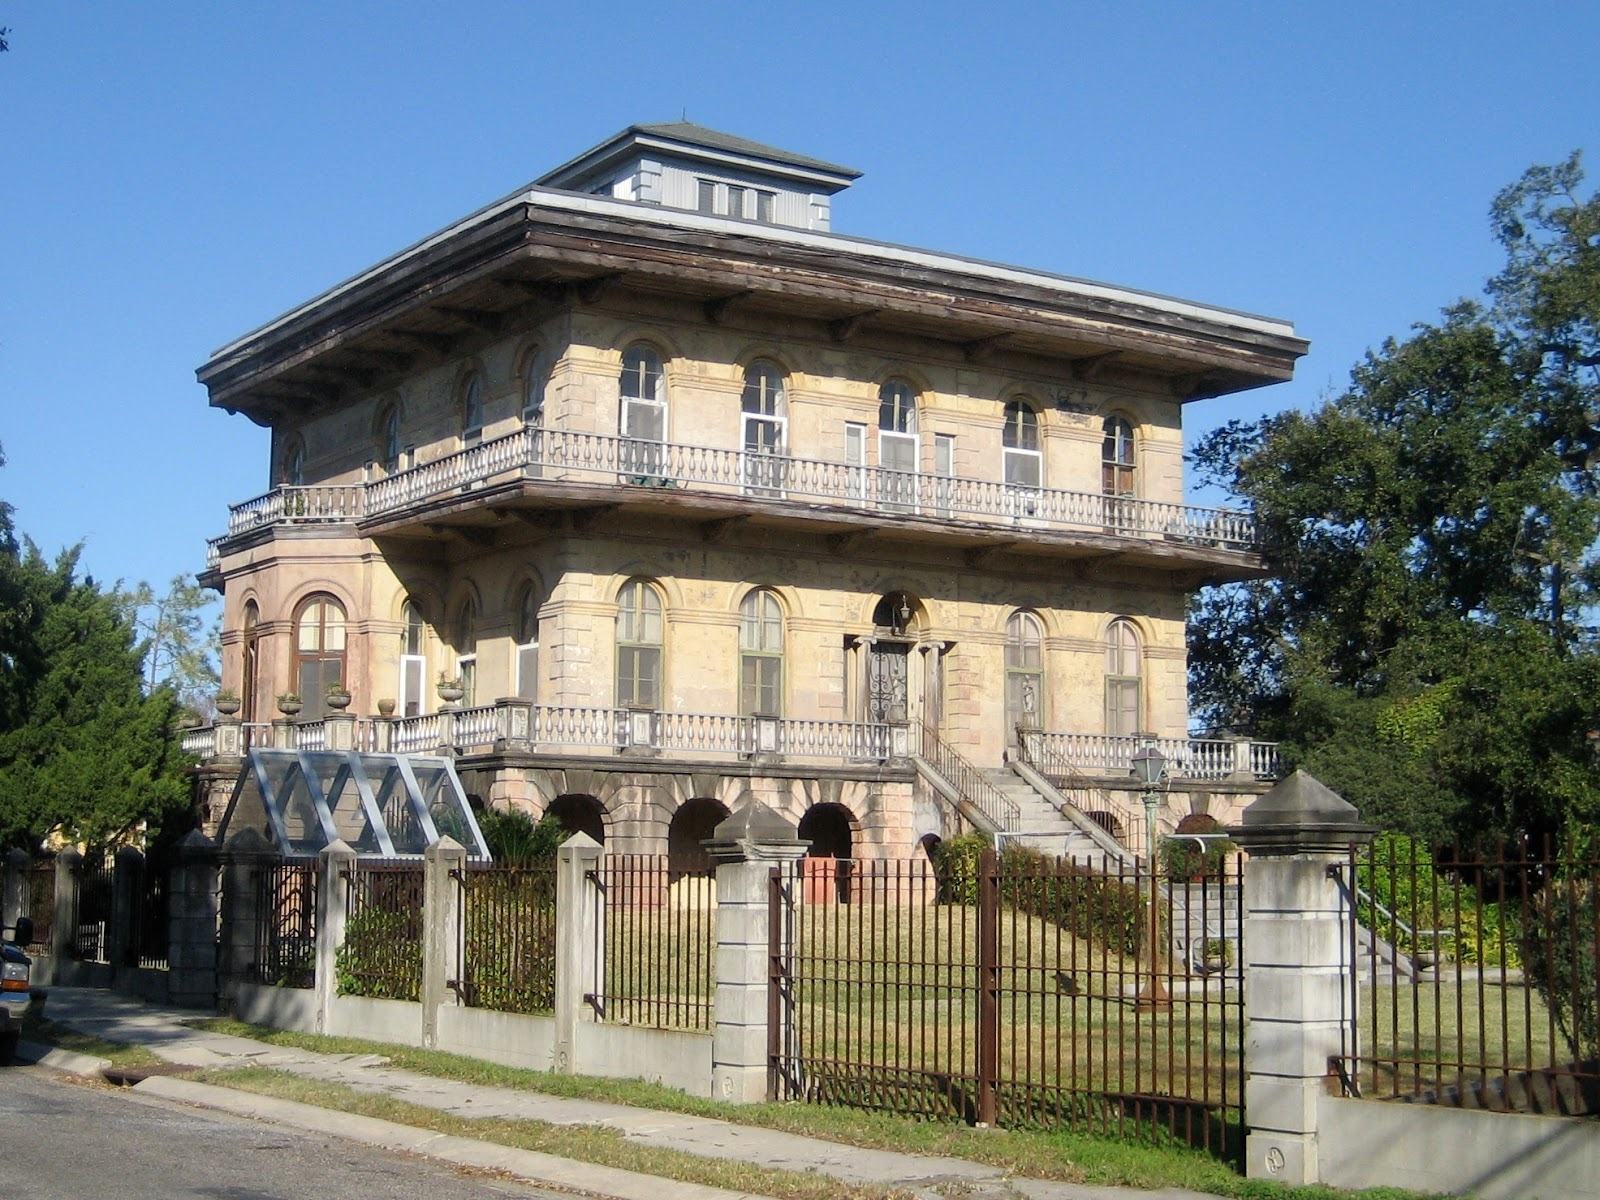 The Picturesque Style Italianate Architecture The Florence Luling House Ne